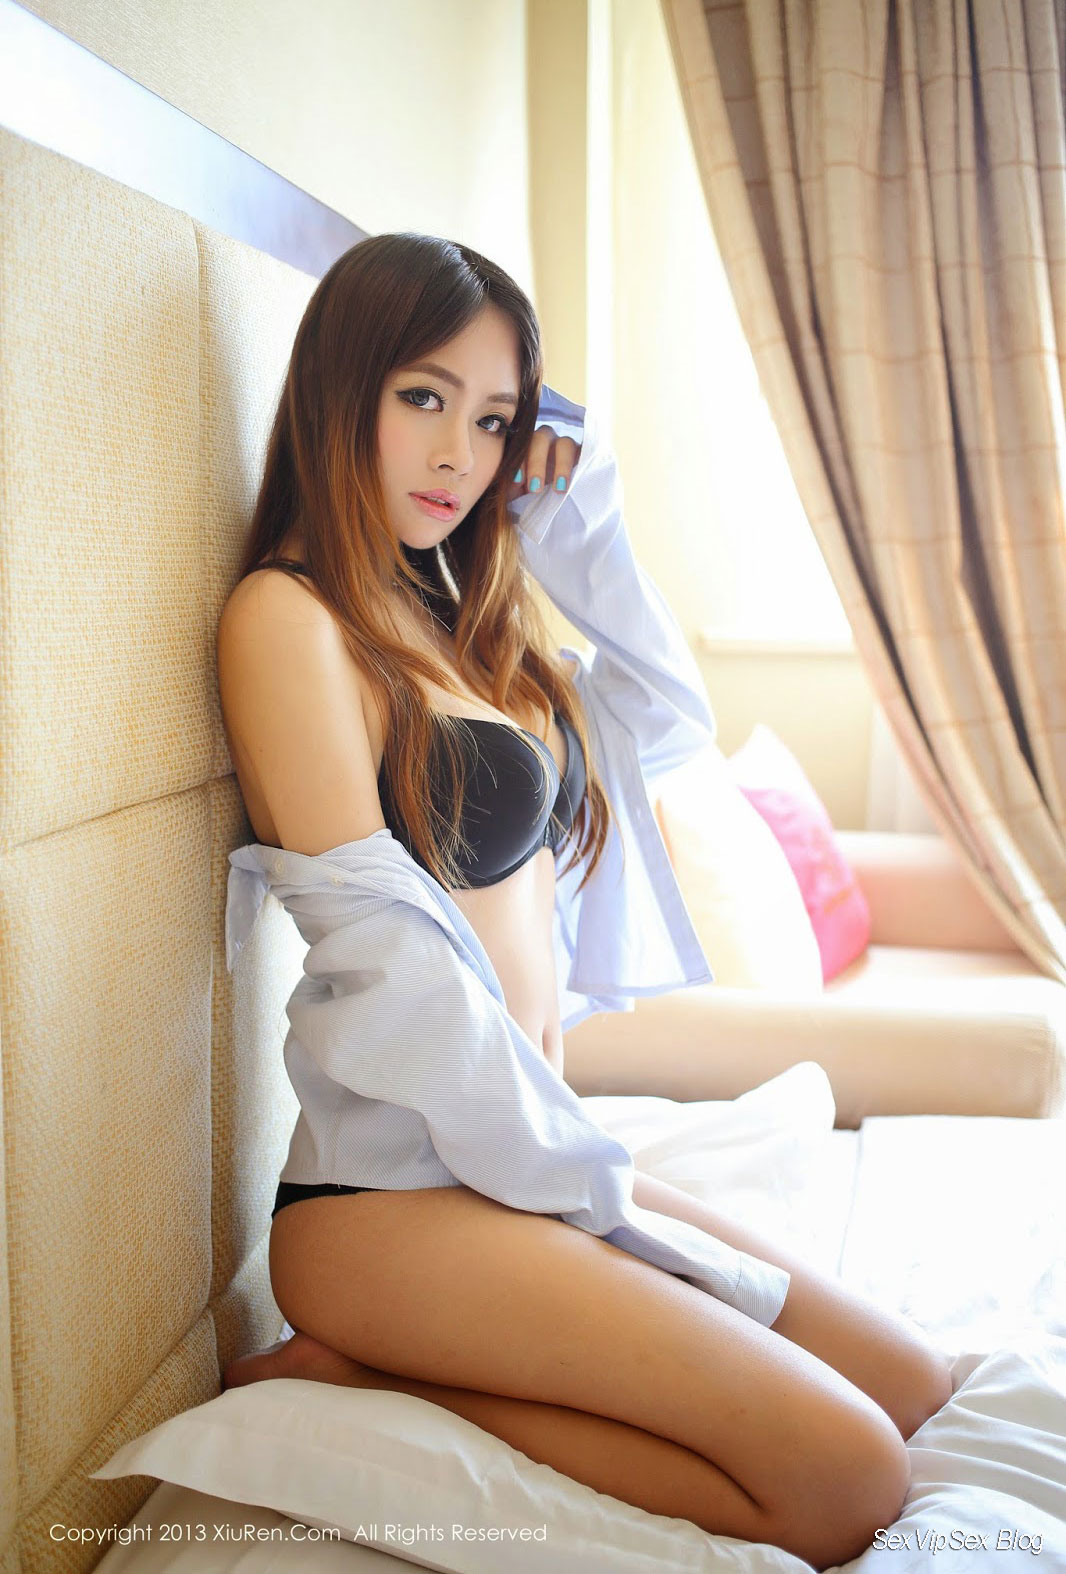 girl bigboob china hot sexy